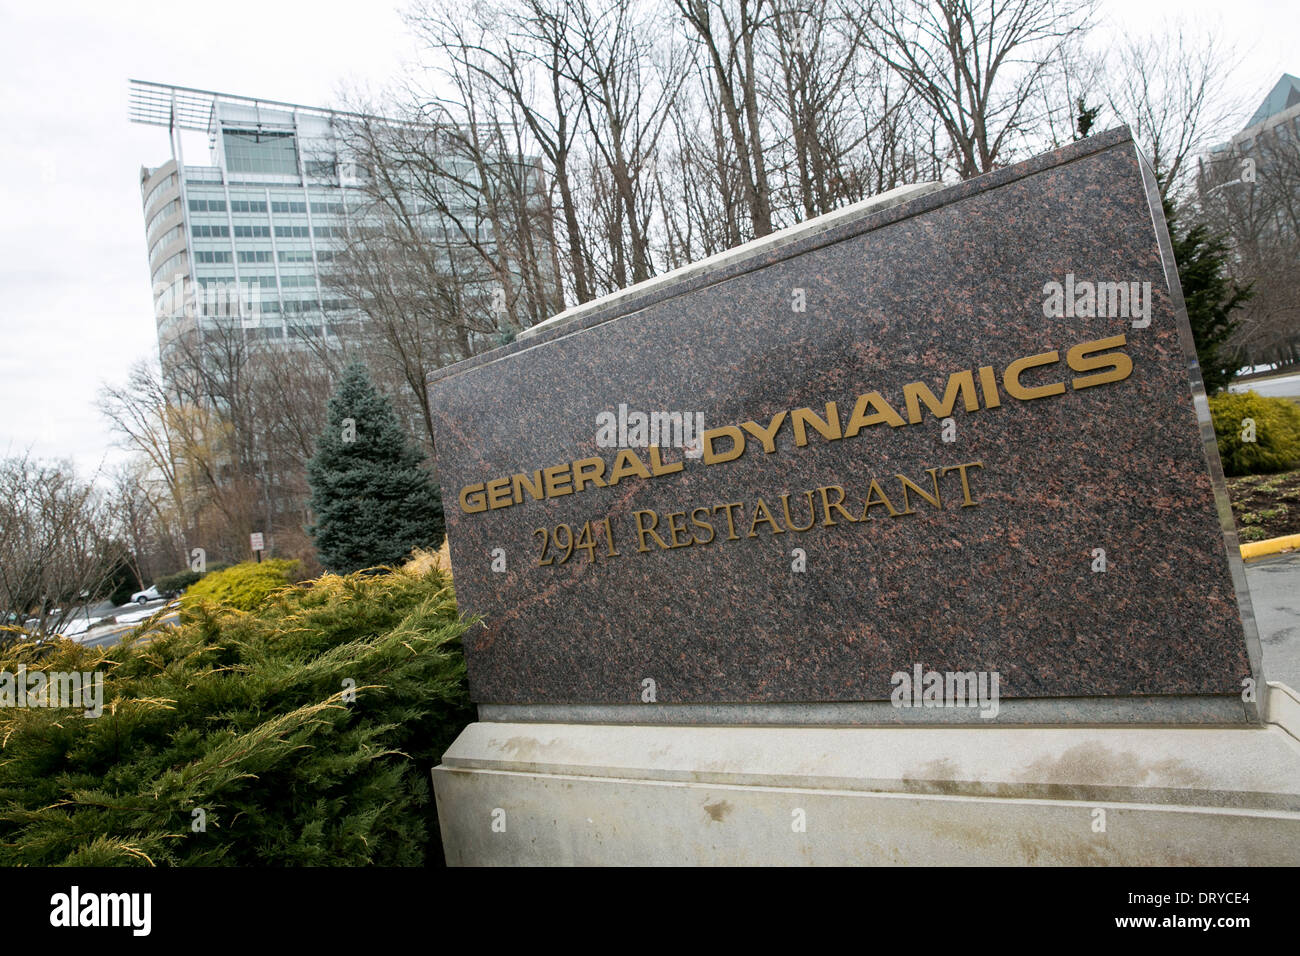 The headquarters of General Dynamics in Falls Church, Virginia.  - Stock Image